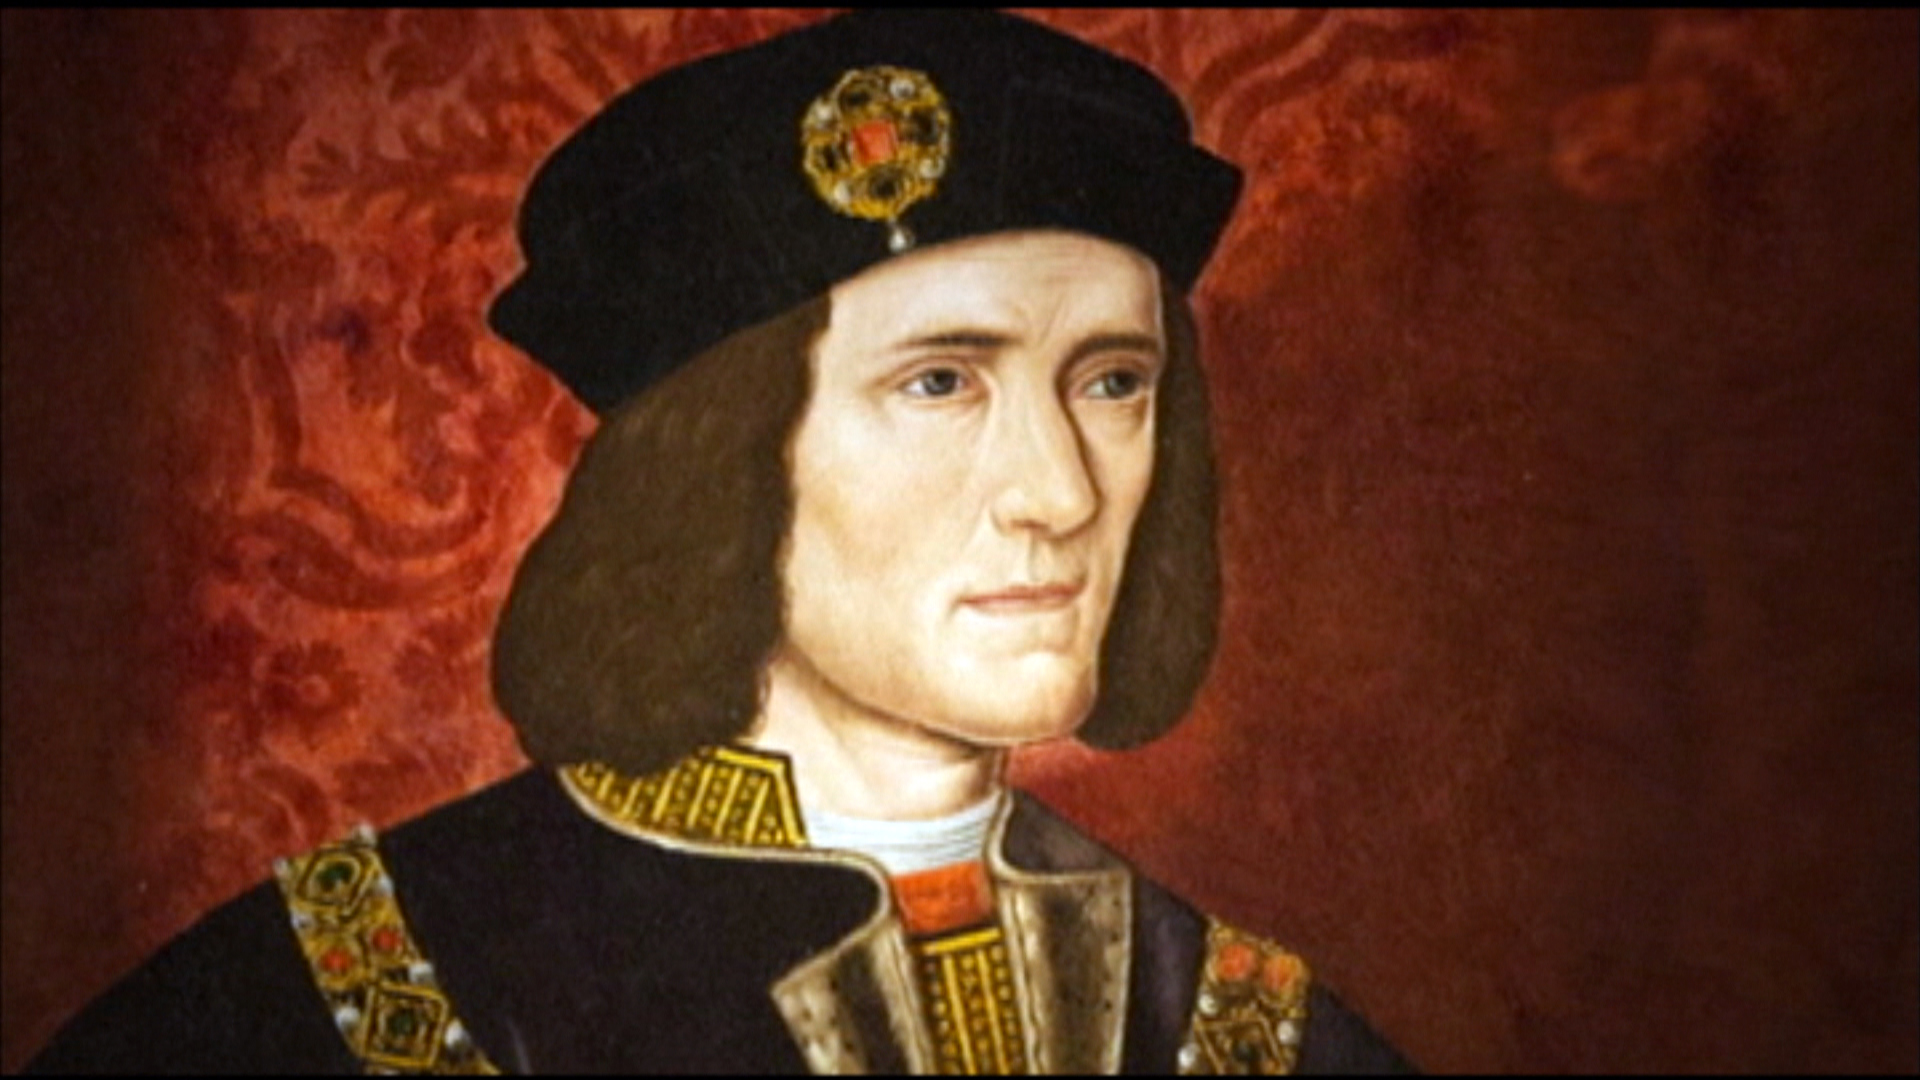 Elderly Mystery Woman Found Buried in Coffin Near Richard III